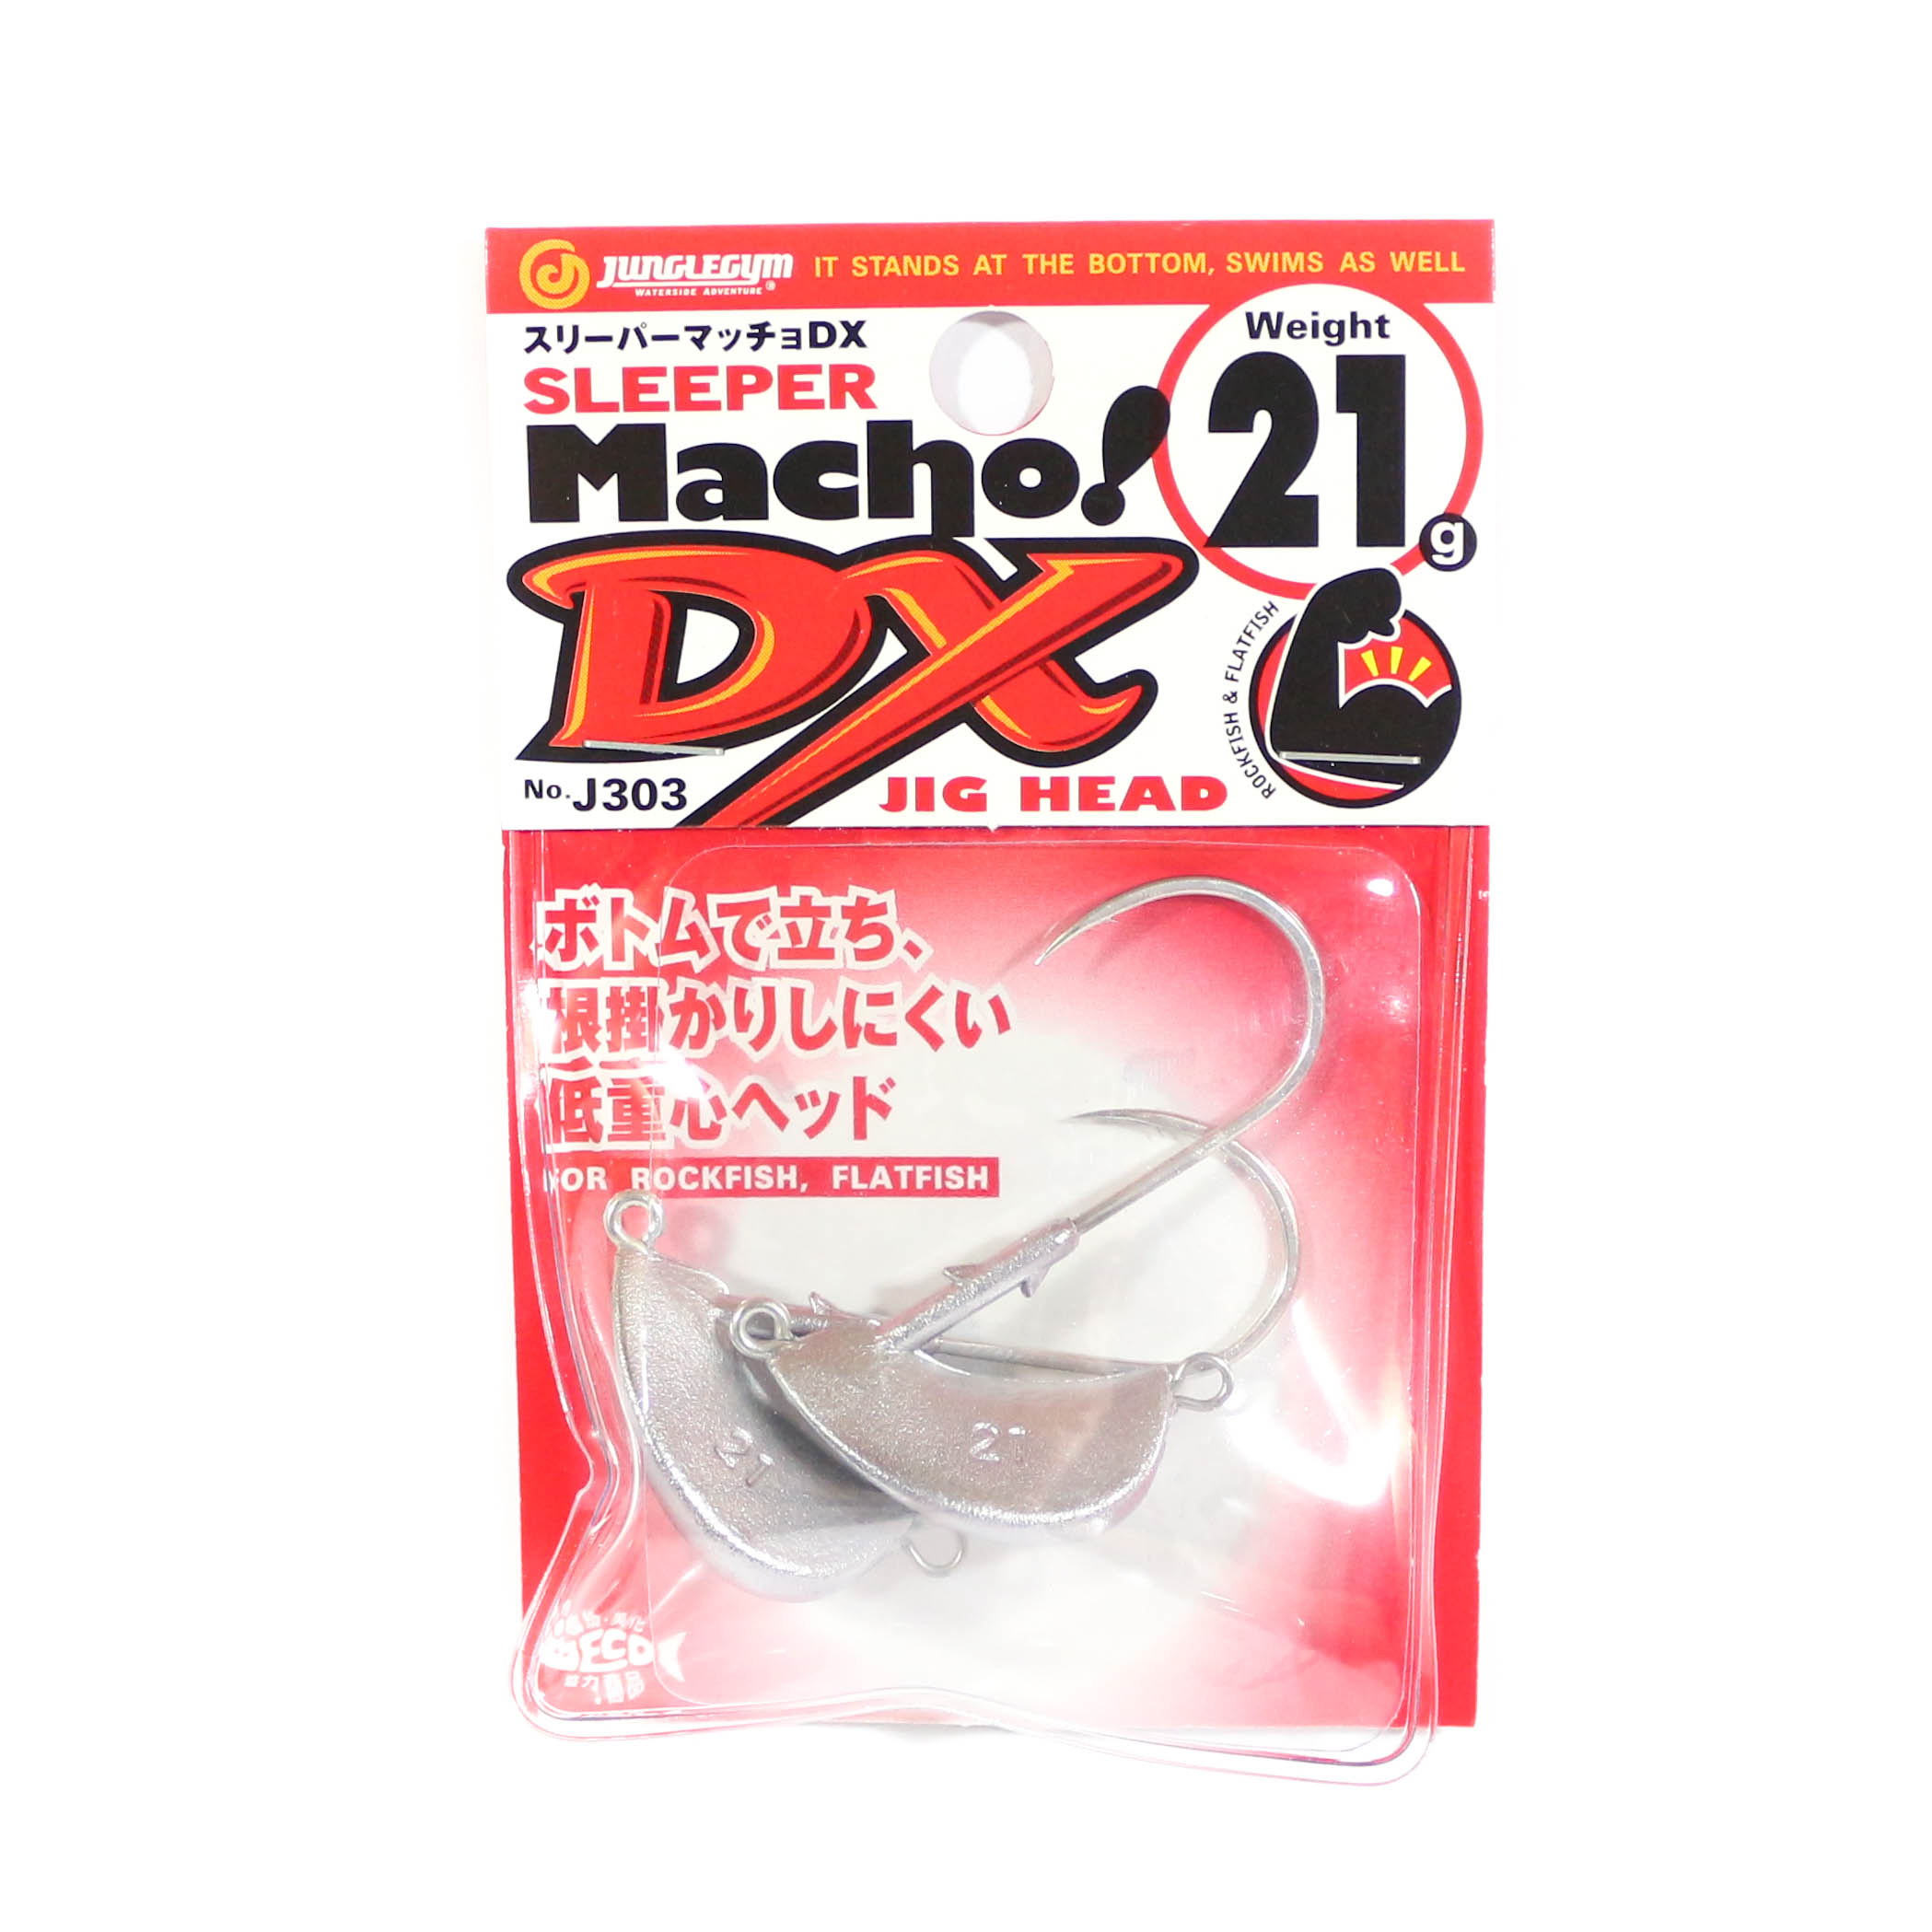 Jungle Gym J303 Jig Head Sleeper Macho DX 21 grams (5206)